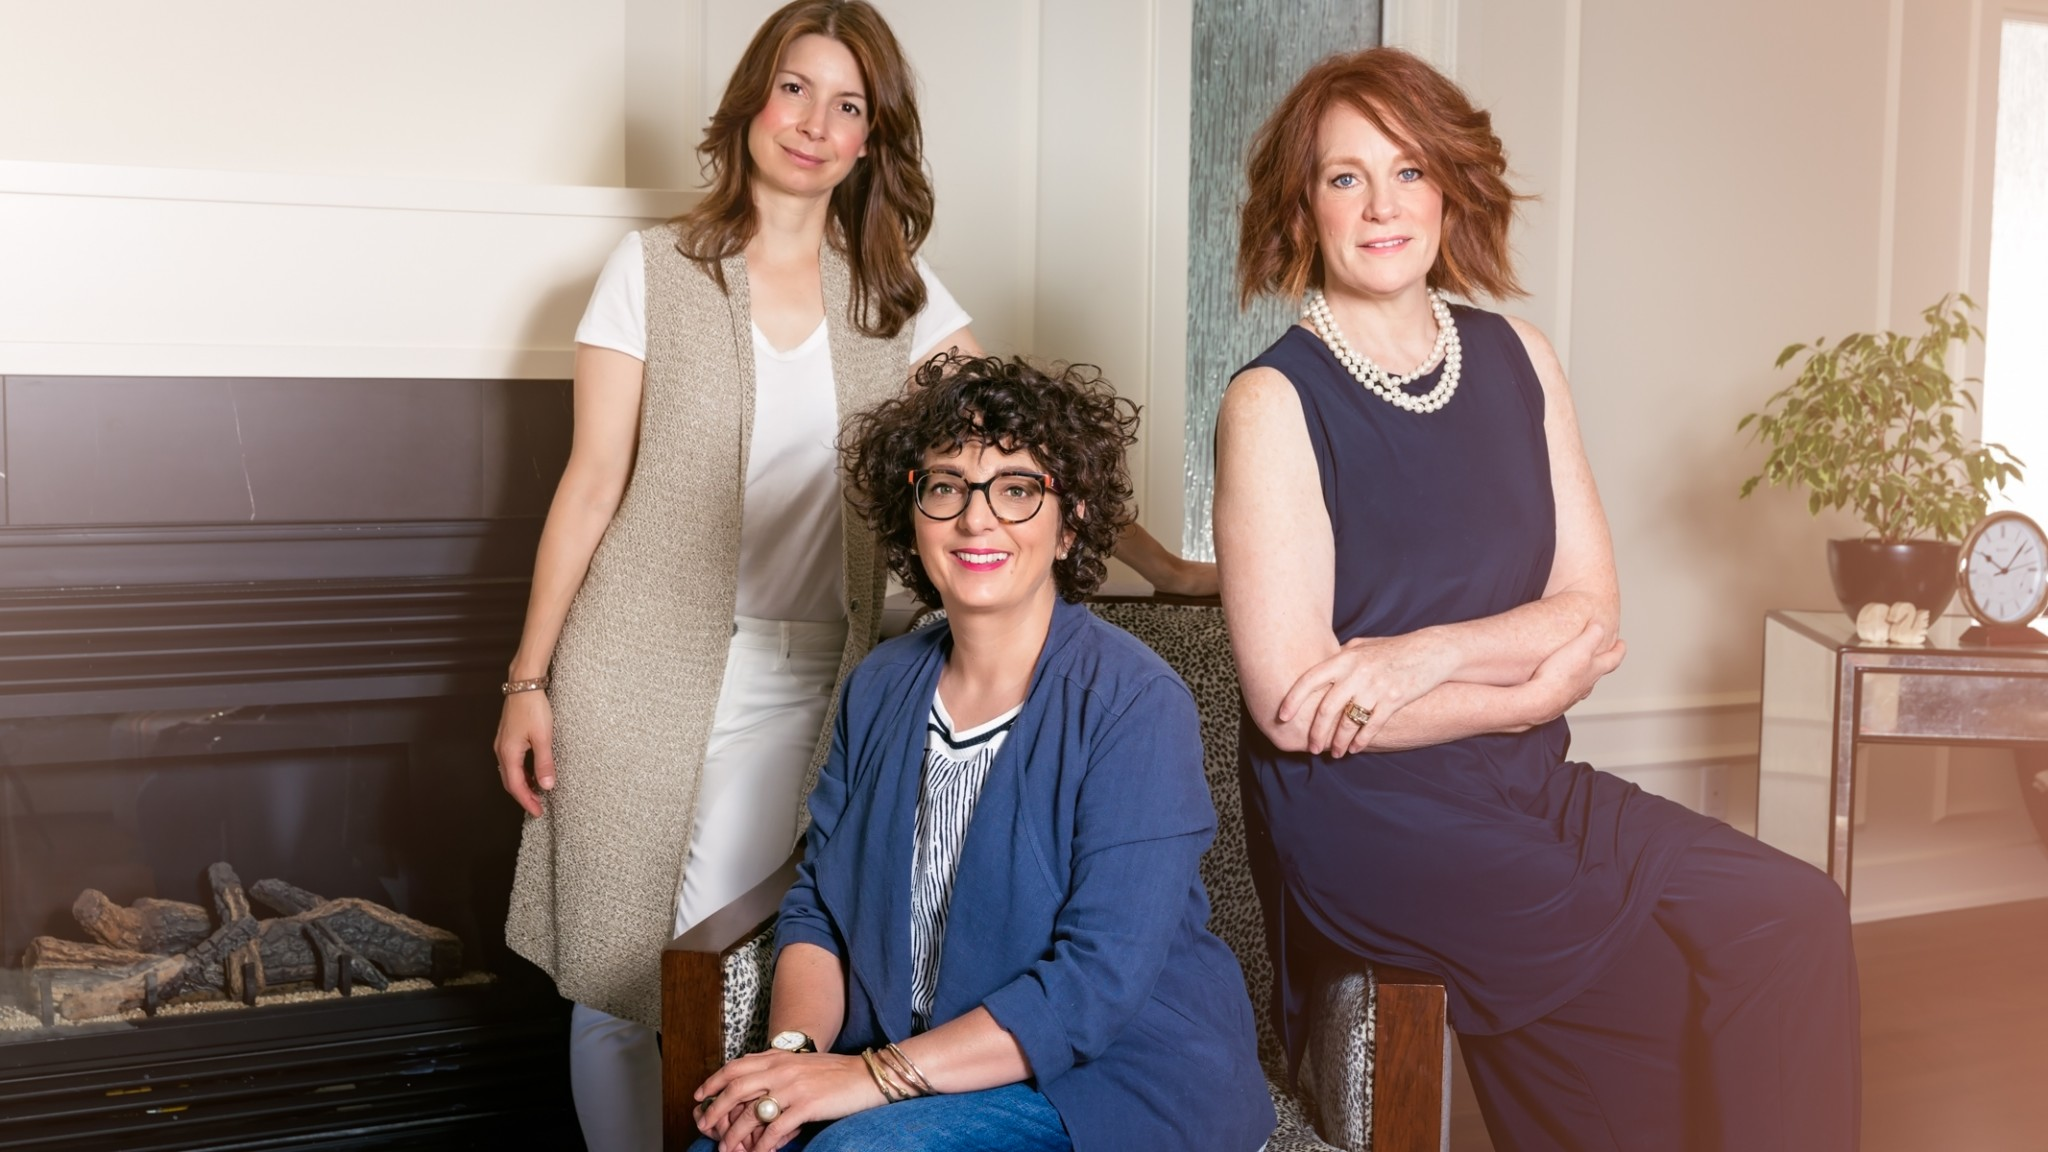 Three interior designers portrait in front of a fireplace.